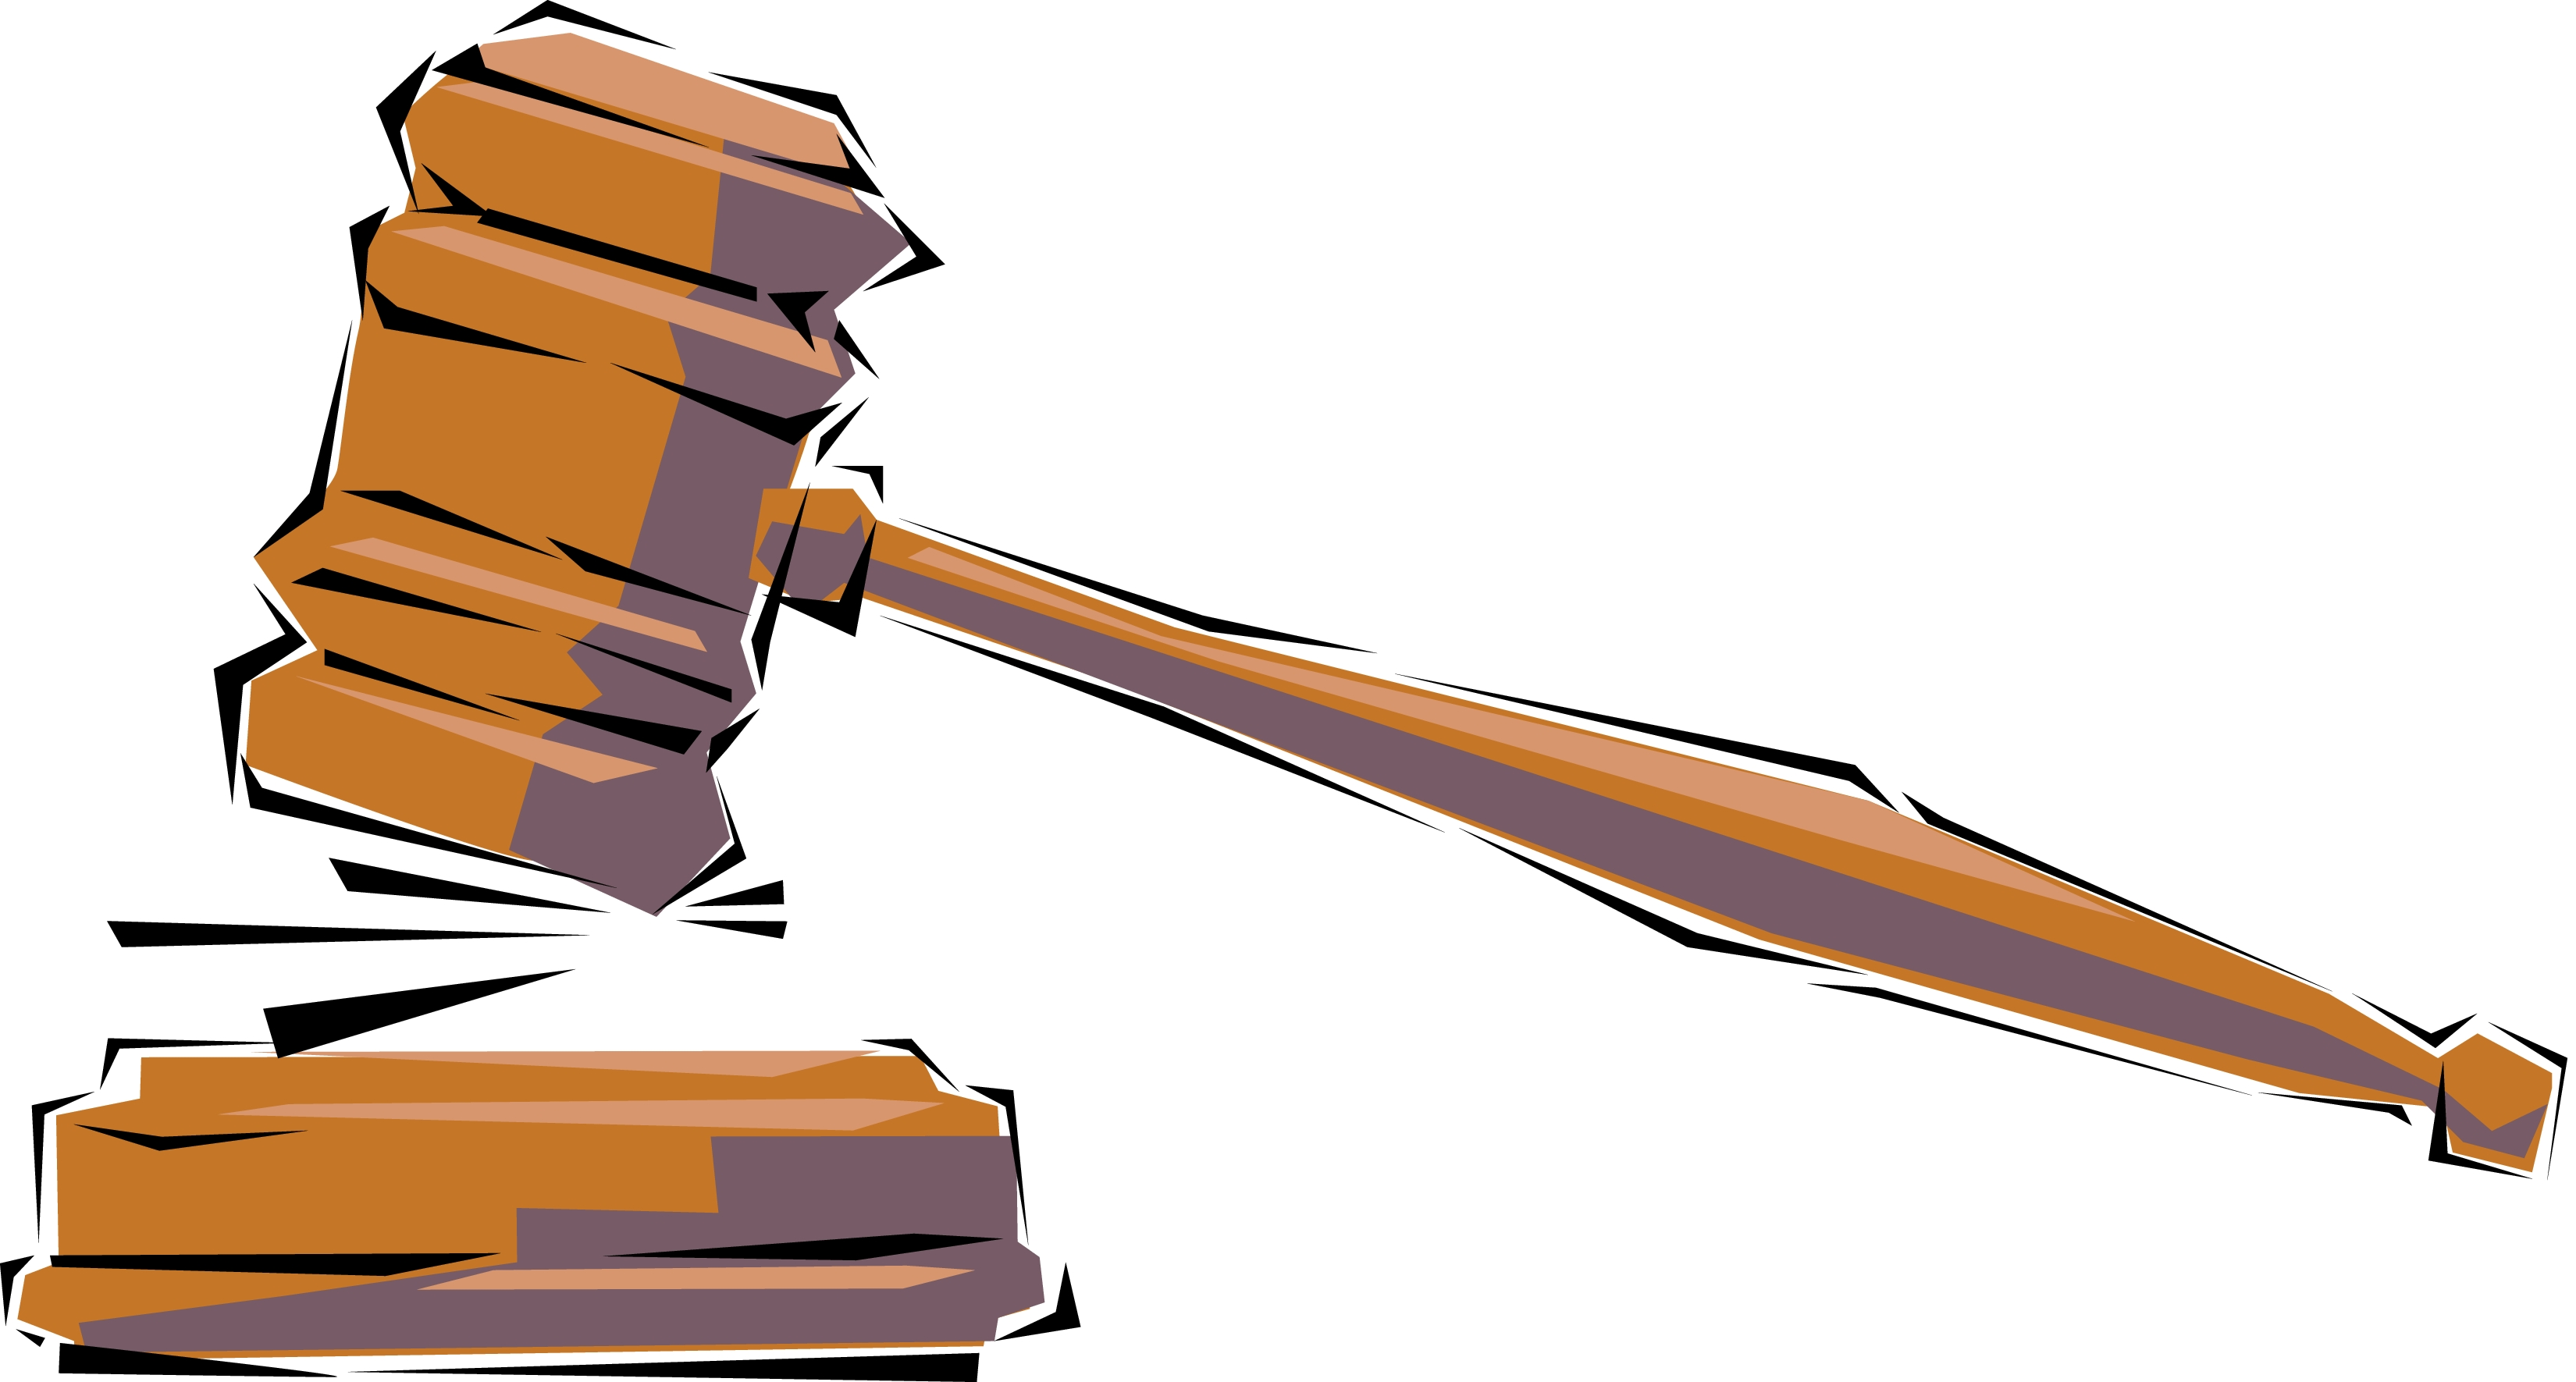 3300x1771 Judgment Gavel Clipart, Explore Pictures